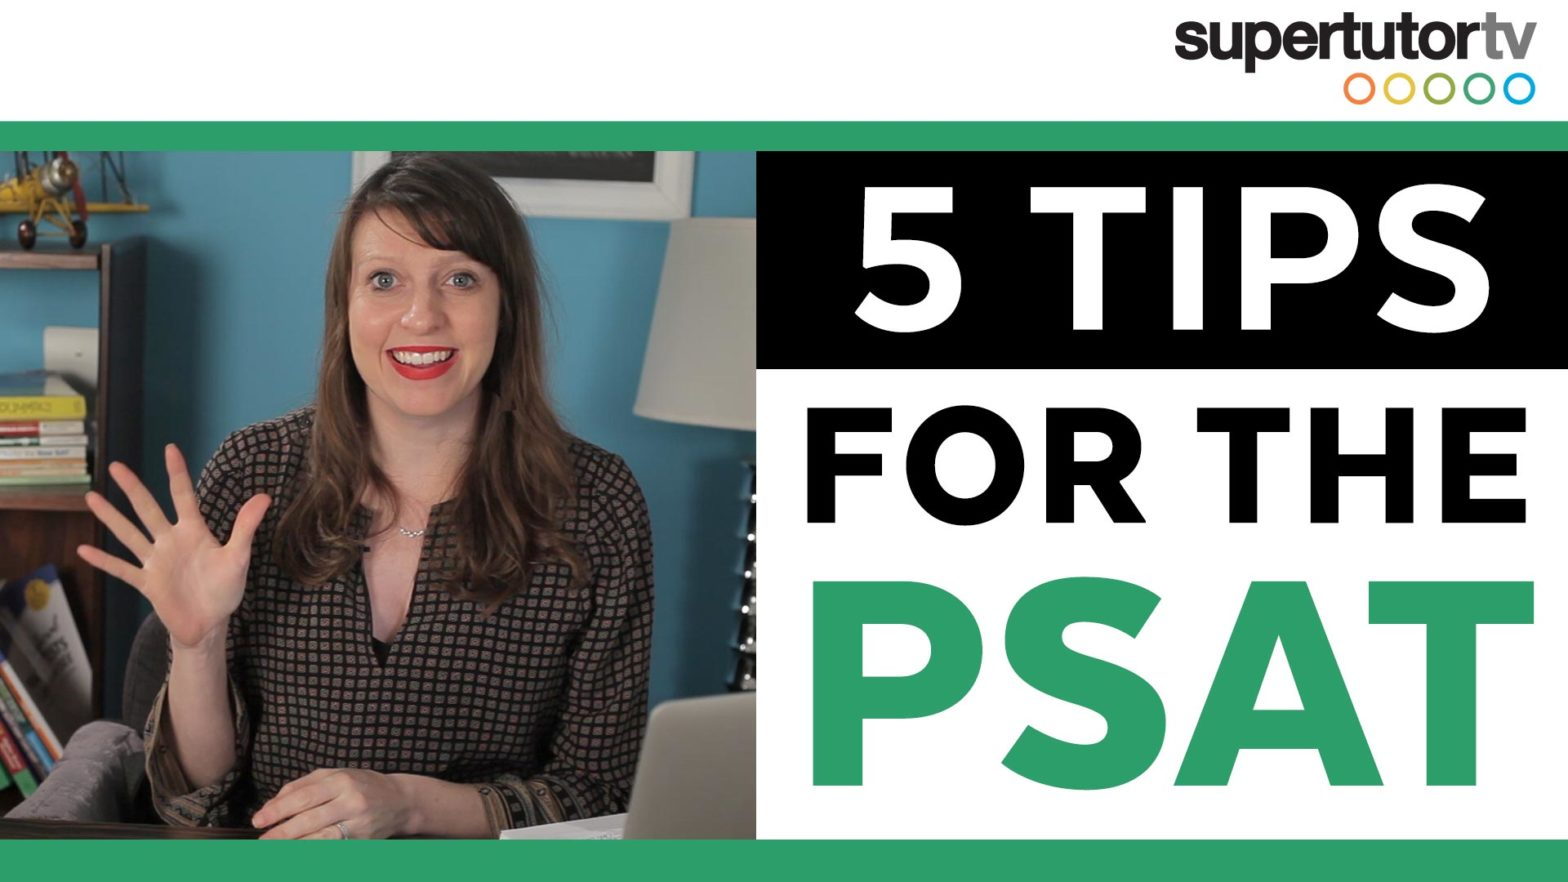 5 Tips for the PSAT